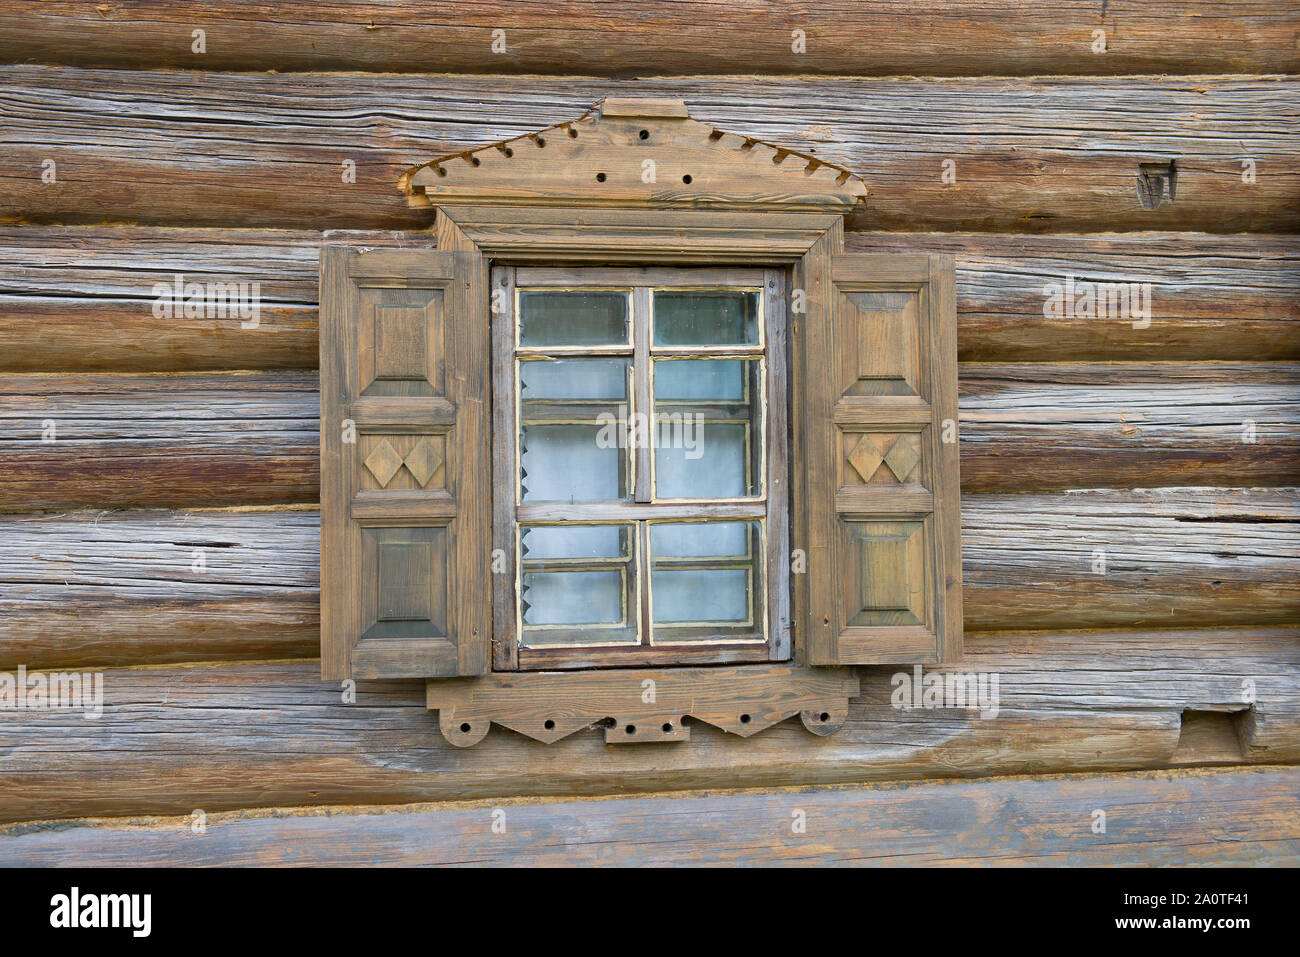 A Small Window With Shutters Of An Old Wooden House Close Up